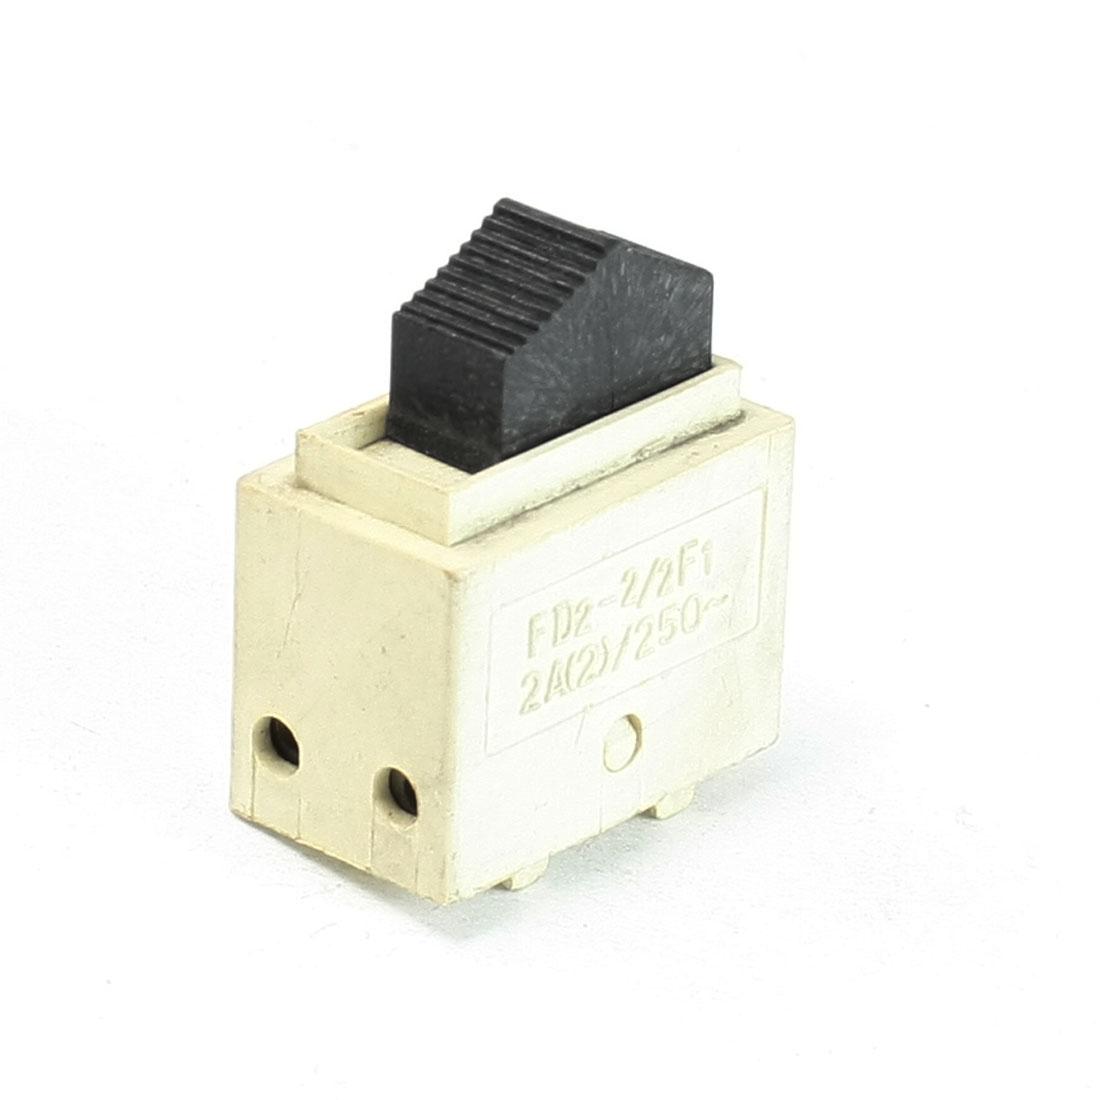 FD2-2/2F1 AC 250V 2A DPST ON/OFF Toggle Switch for Hand Electric Drill